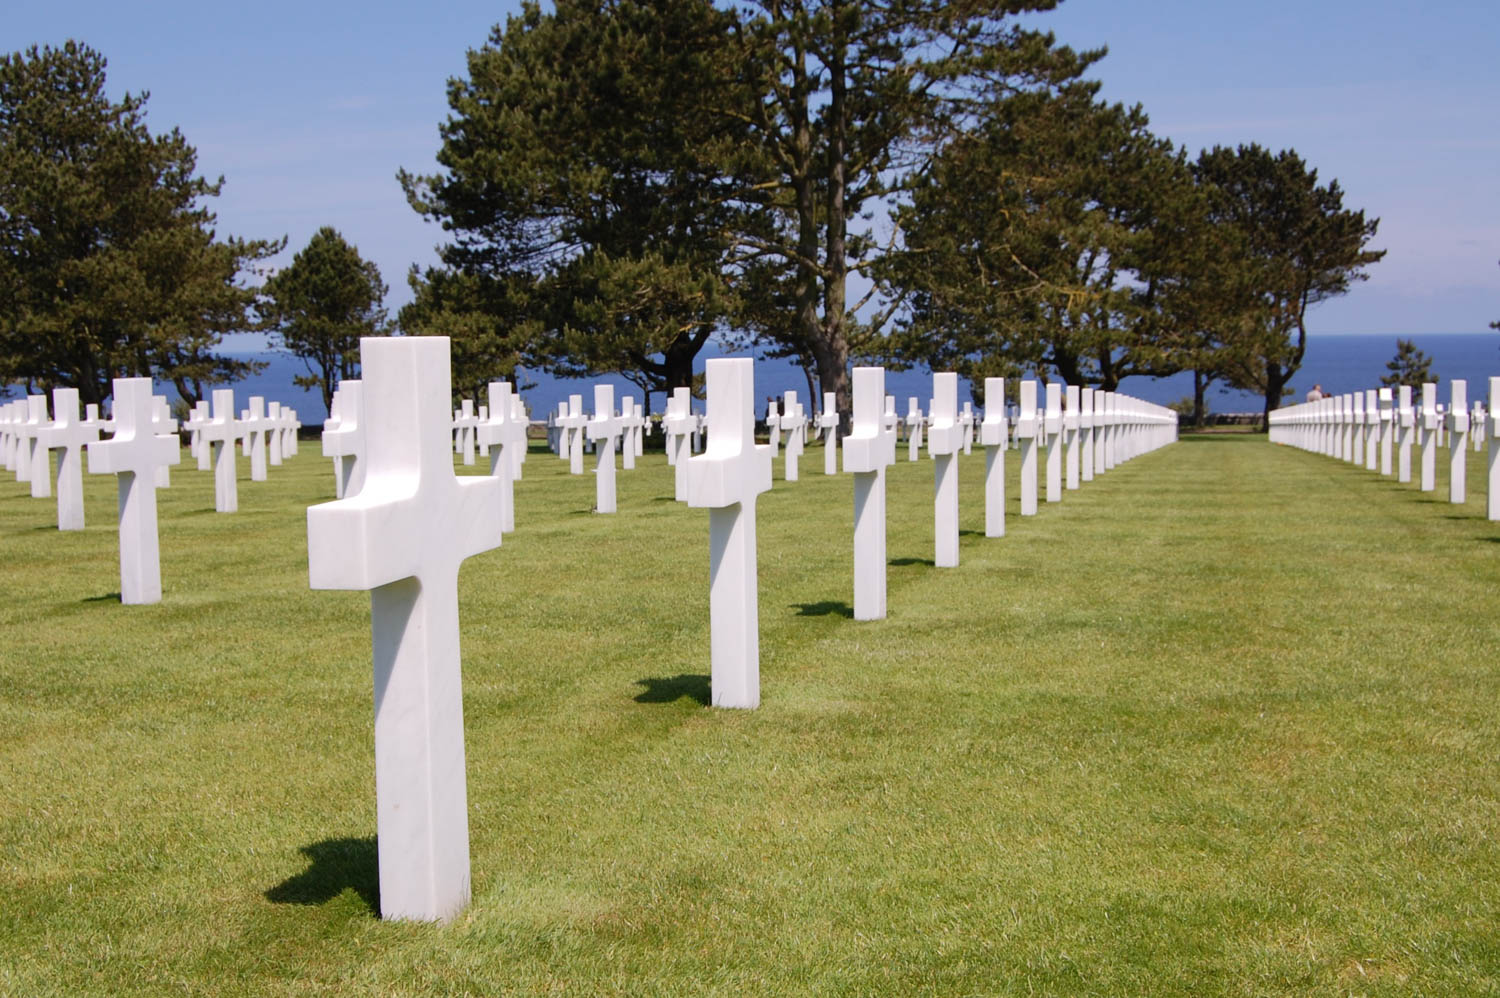 Rows of crosses and stars of David fill the U.S. military cemetery at Colleville-sur-Mer near Omaha Beach.